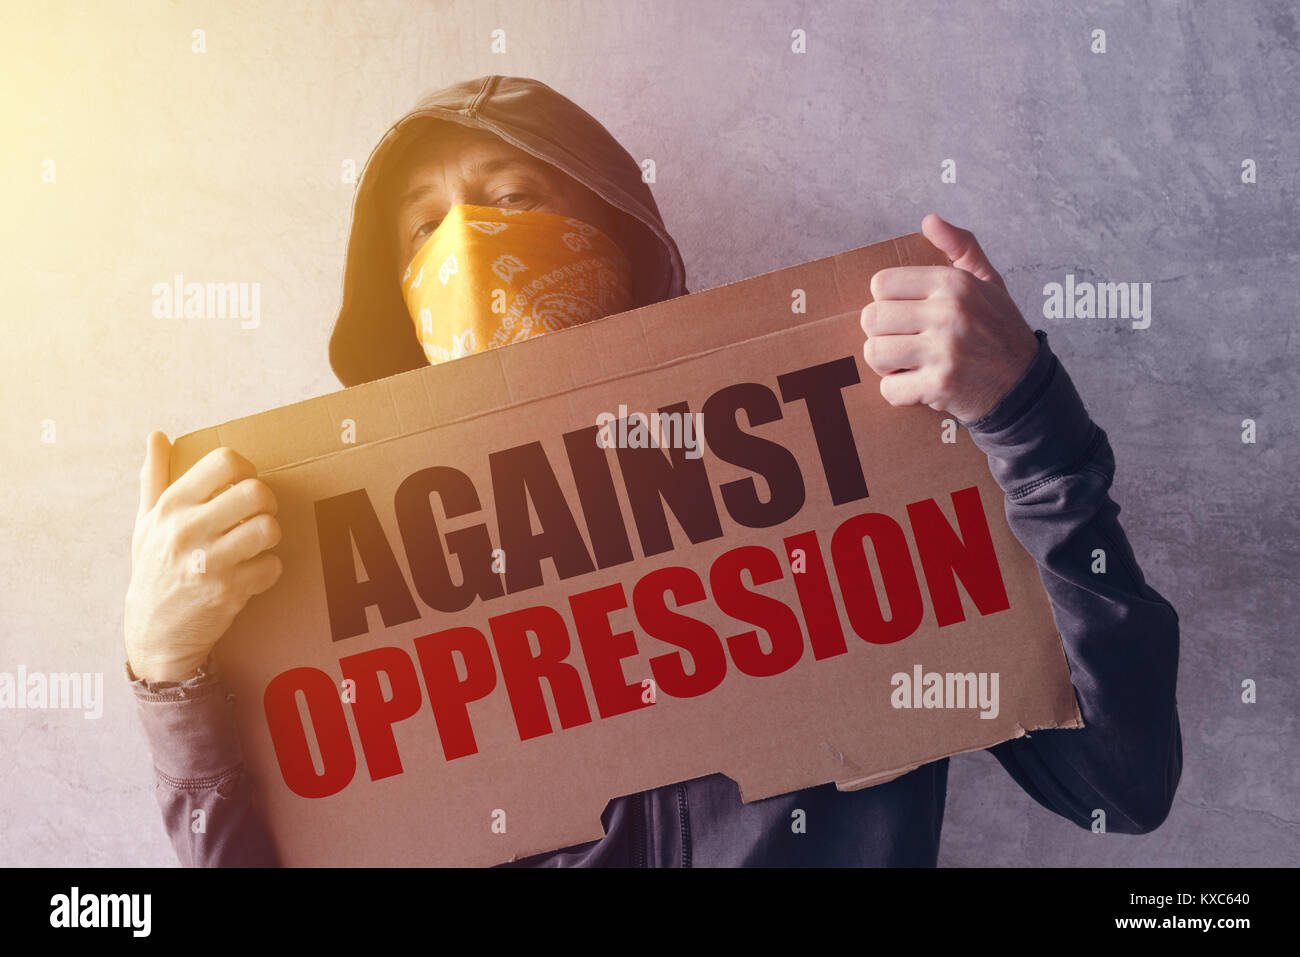 Activist protesting against oppression, hooded male person with scarf over face holding a banner with statement. - Stock Image